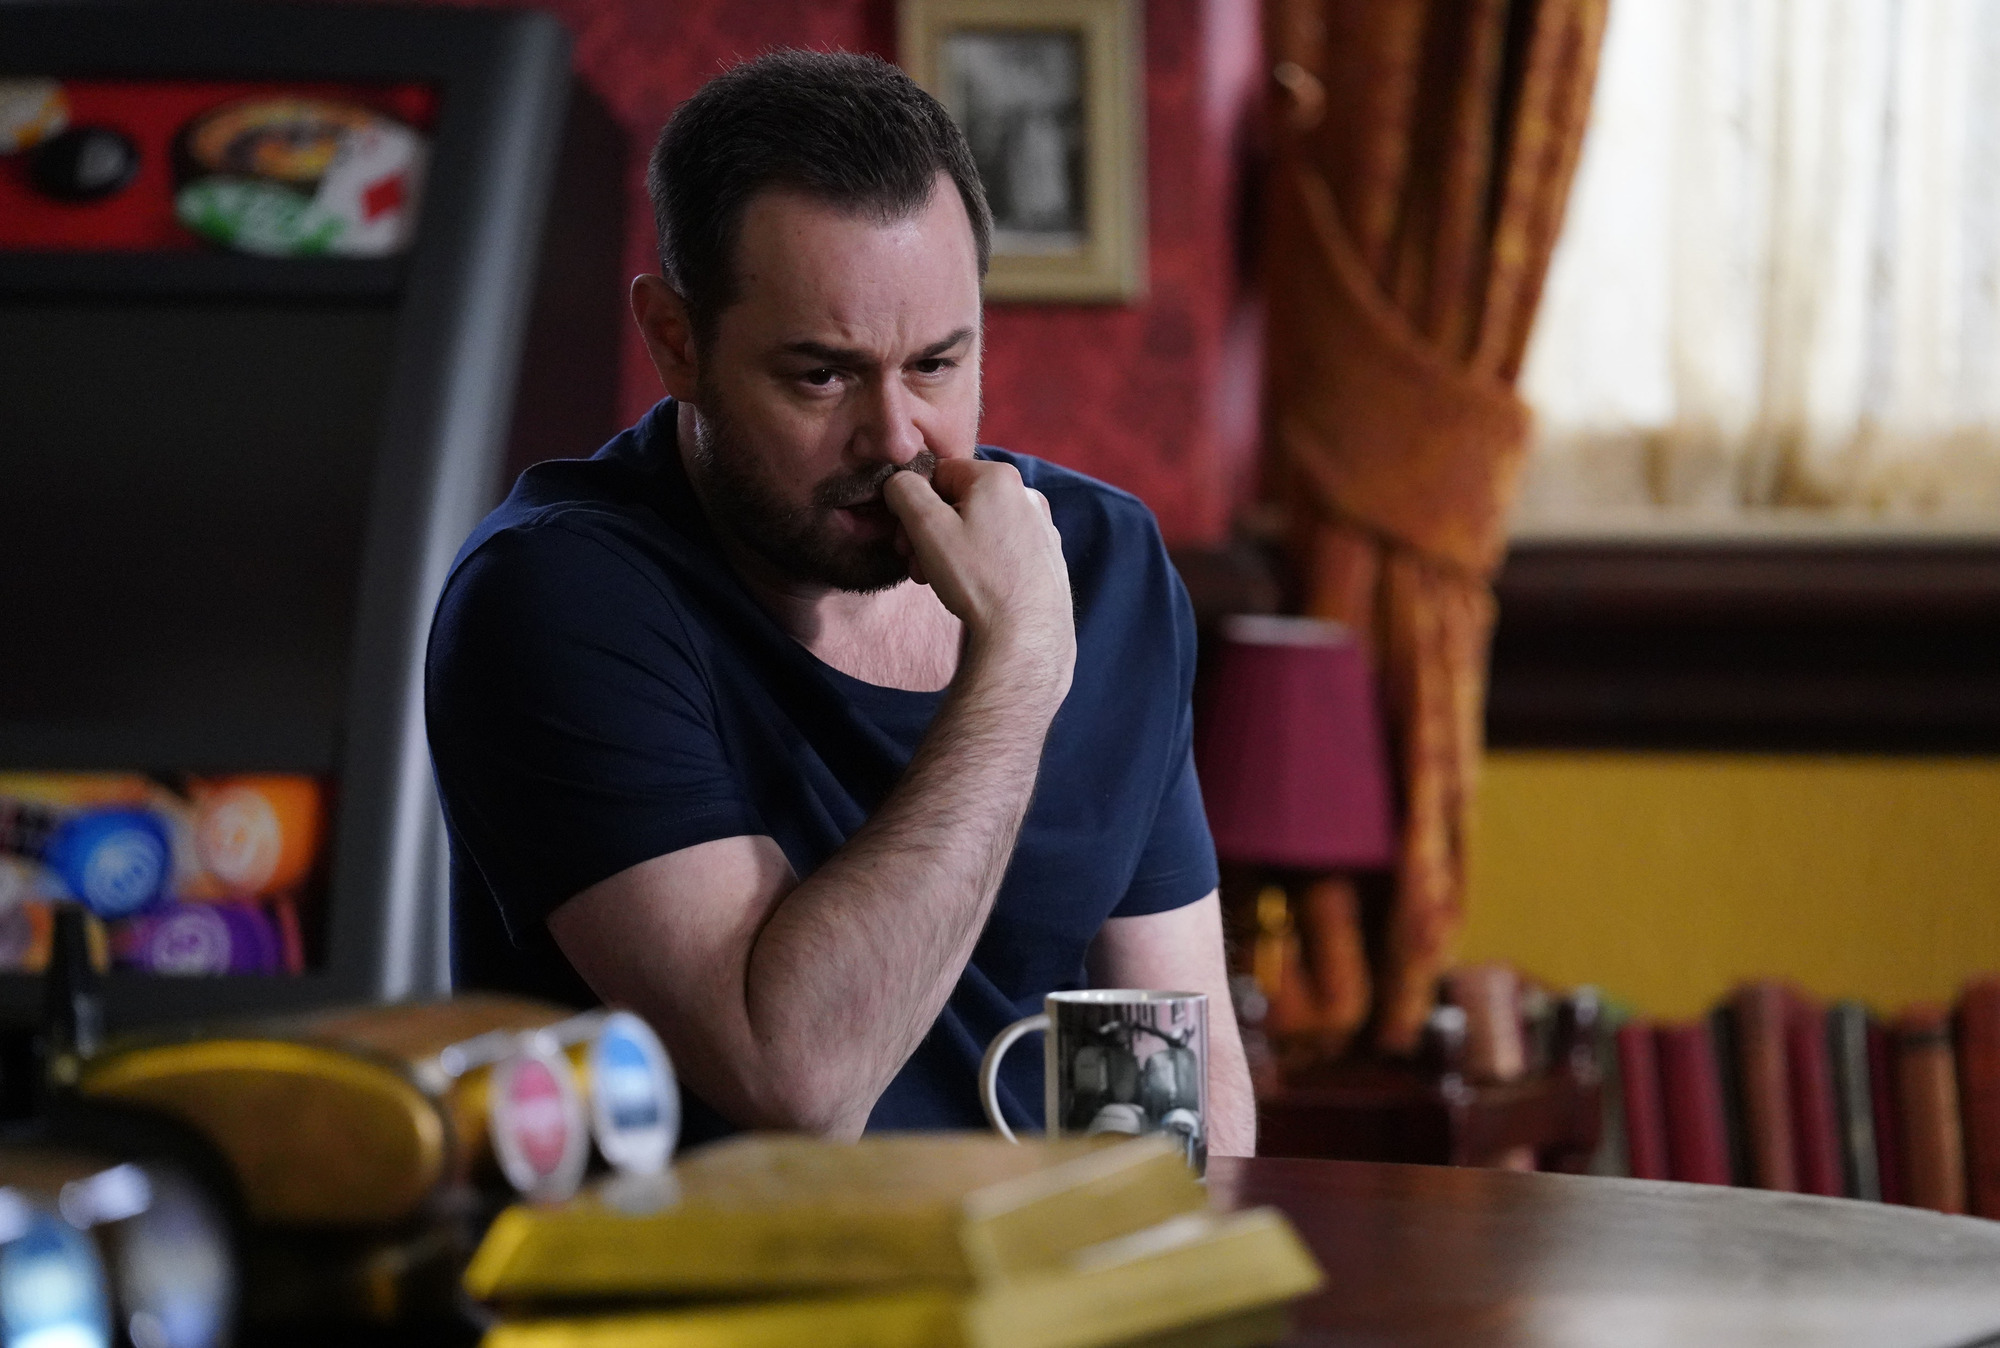 EastEnders gives Danny Dyer a World Cup and politics platform as he pitches Gareth Southgate as Brexit Minister